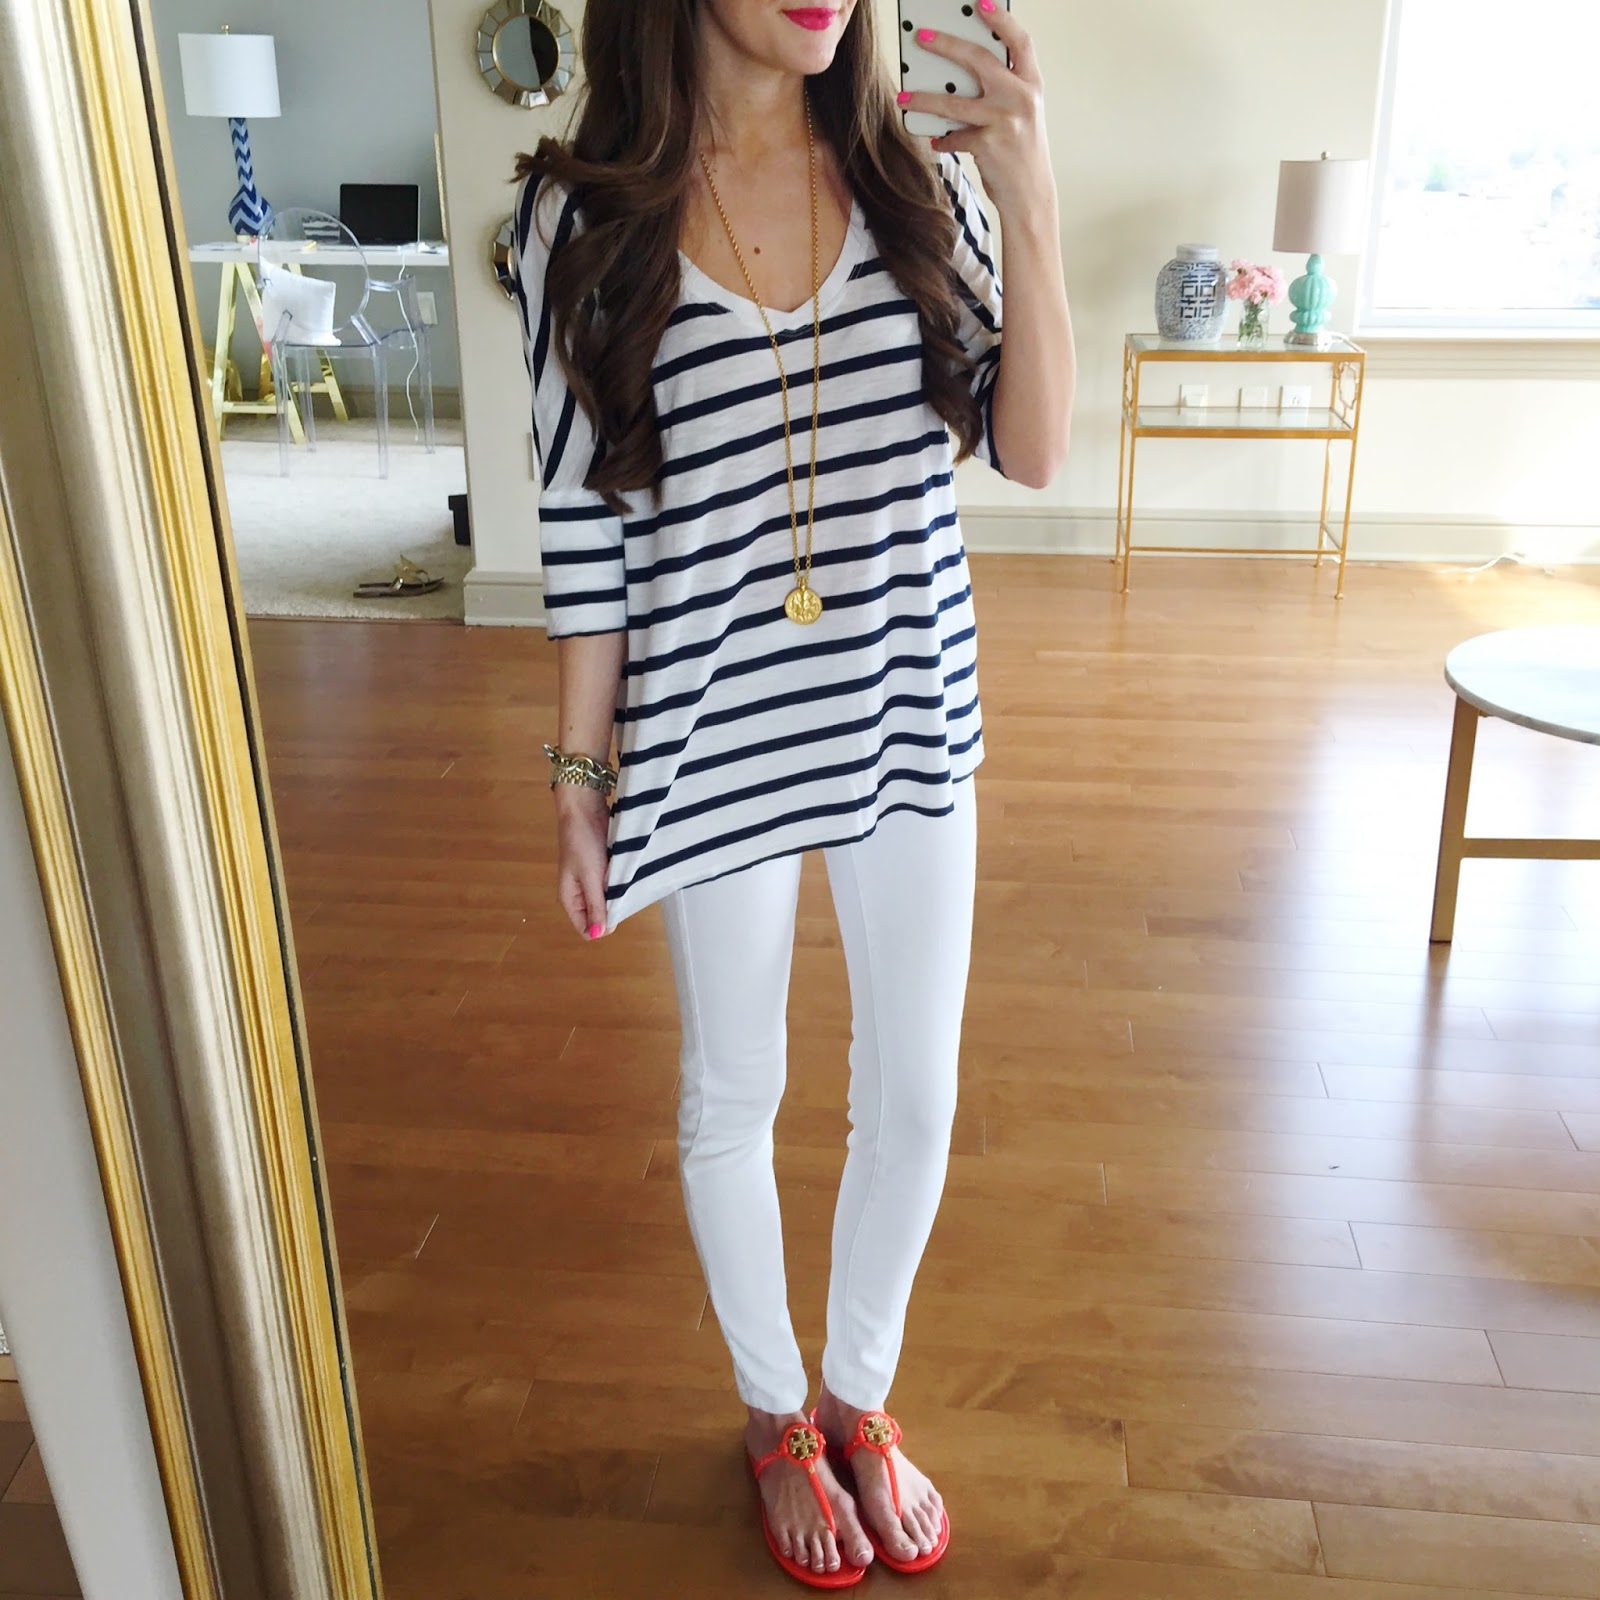 Striped shirt with white skinny jeans and fun sandals